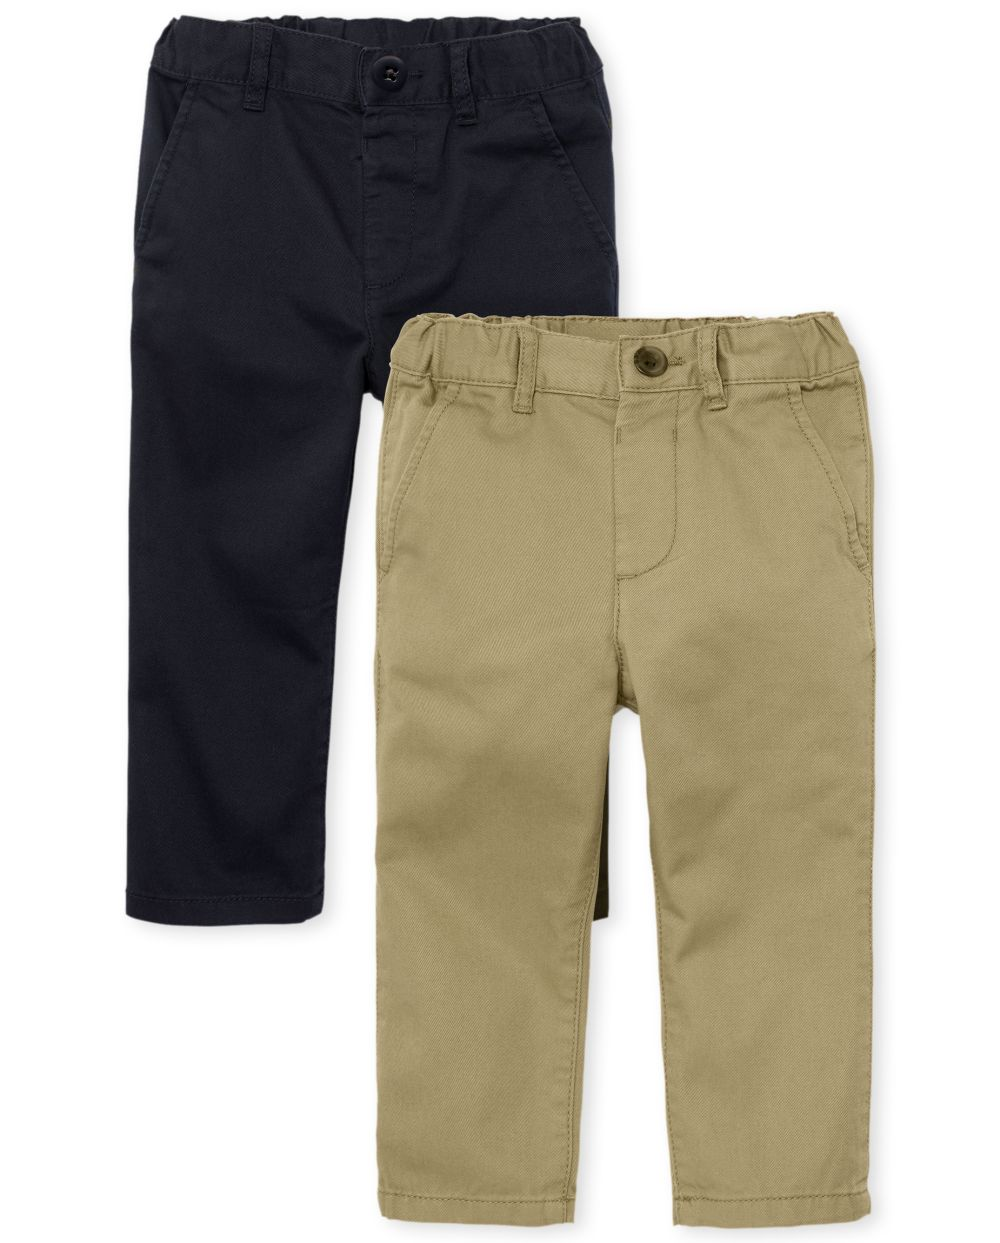 Baby And Toddler Boys Uniform Skinny Chino Pants 2-Pack